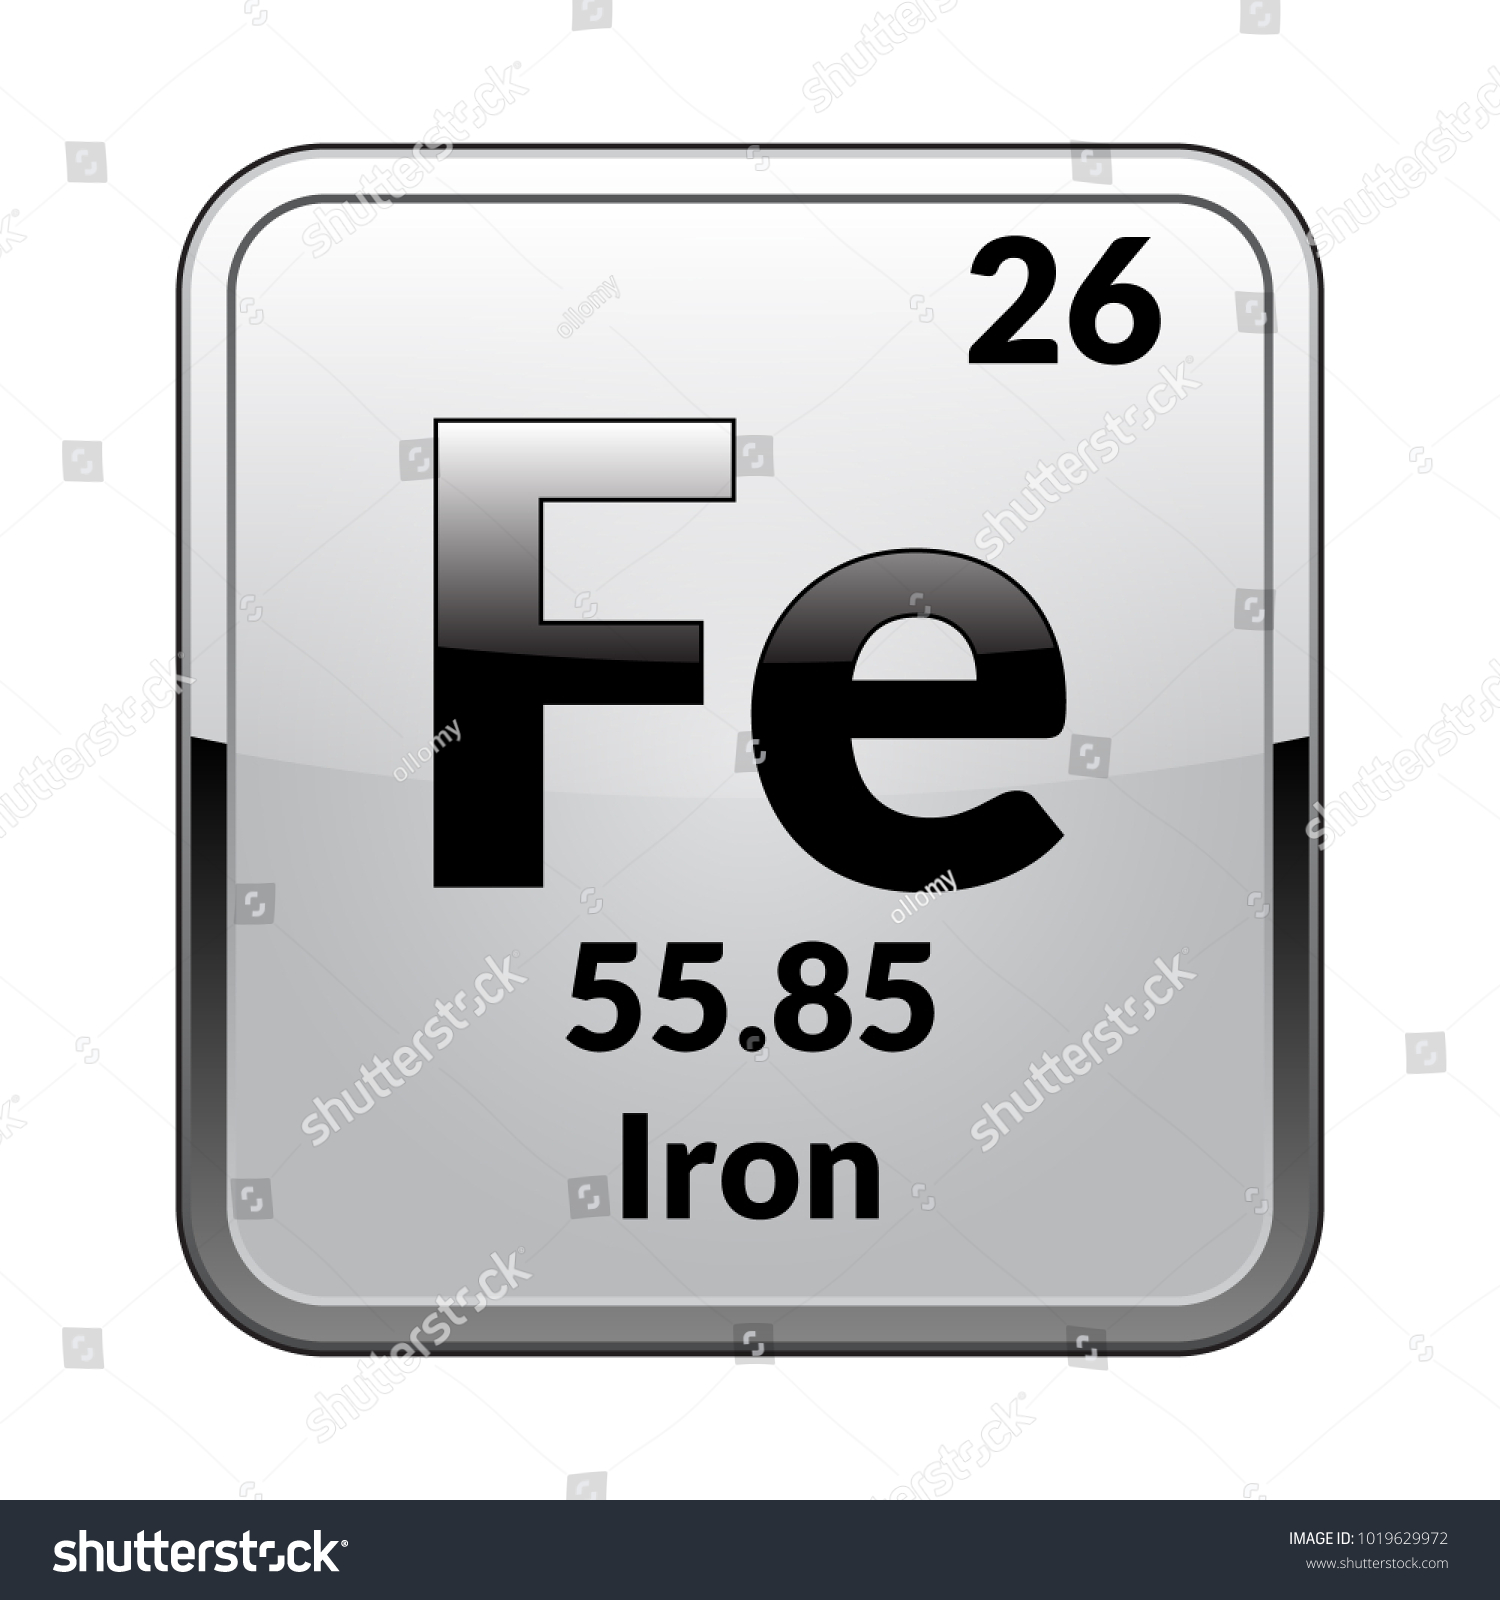 Iron symbolchemical element periodic table on stock vector iron symbolemical element of the periodic table on a glossy white background in a biocorpaavc Gallery